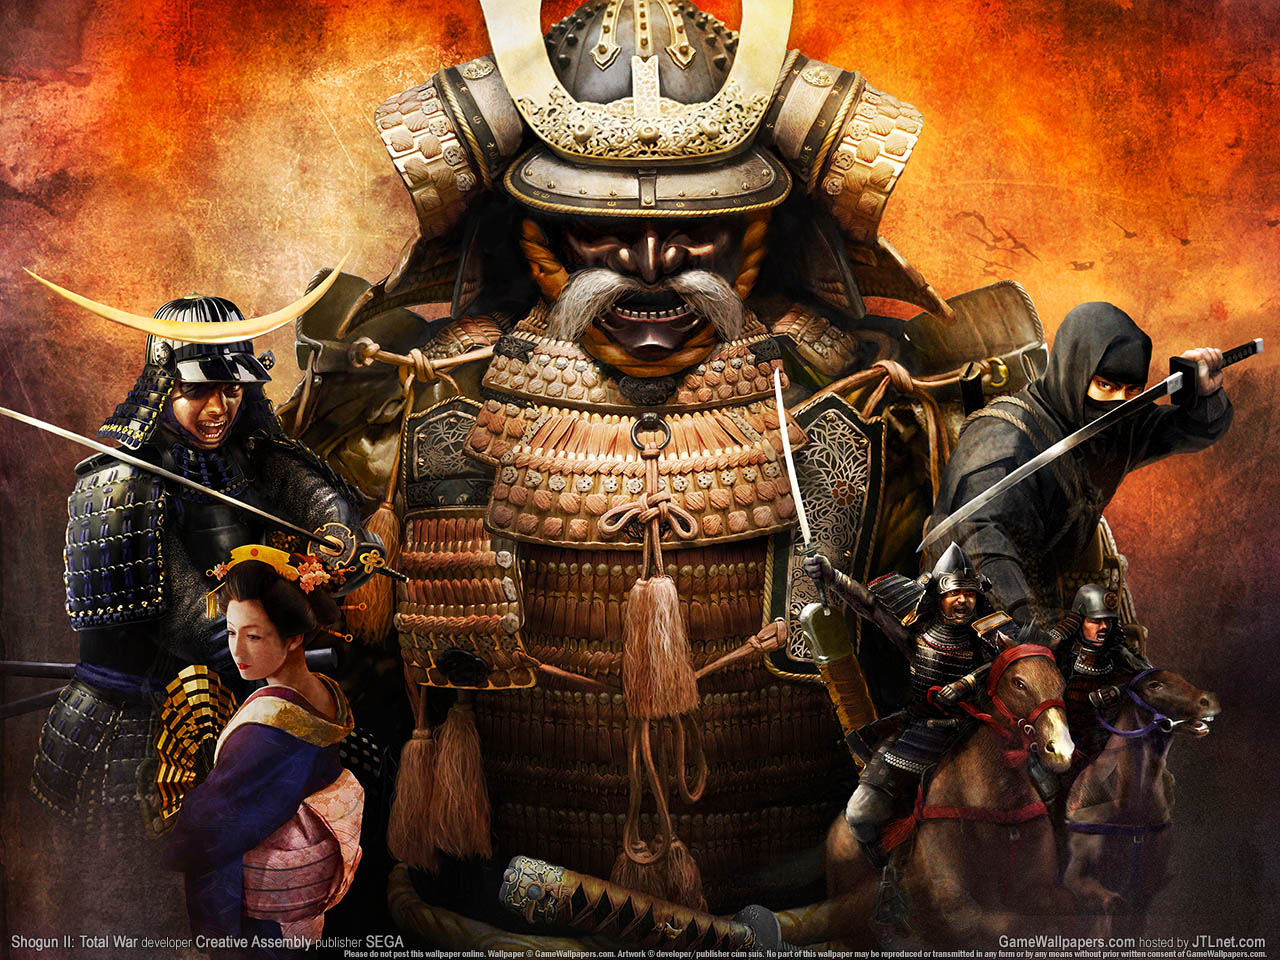 1280282819_1280x960_shogun-2-total-war